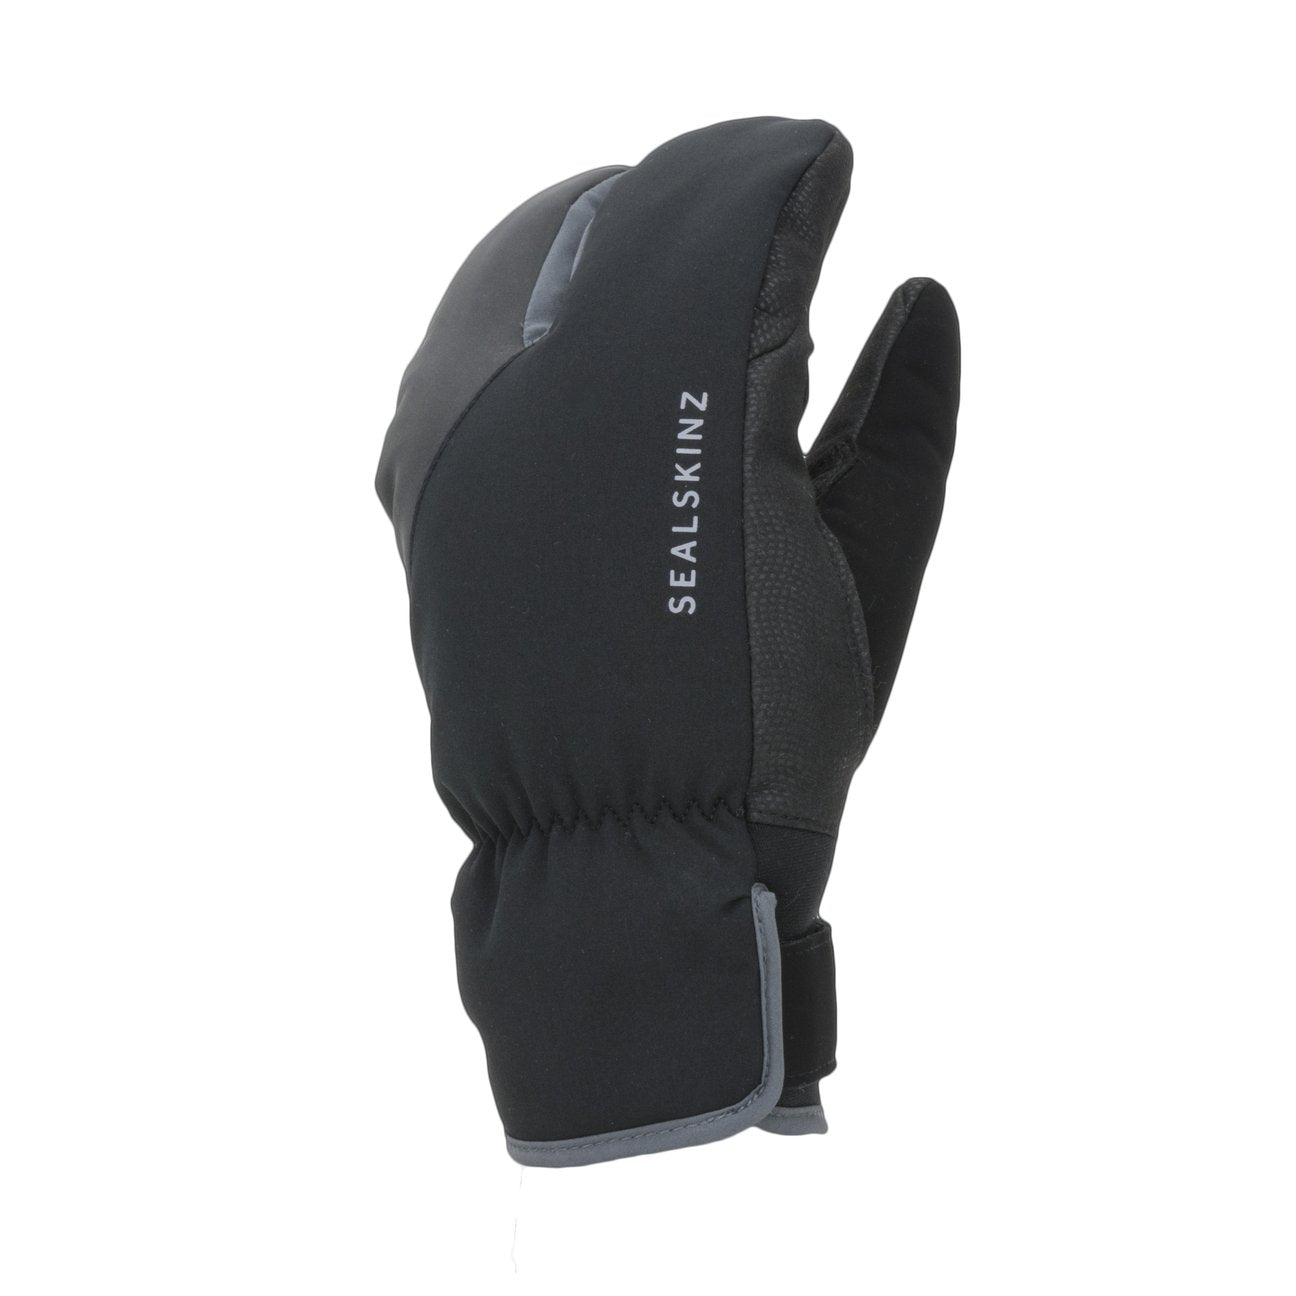 waterproof-extreme-cold-weather-cycle-split-finger-glove